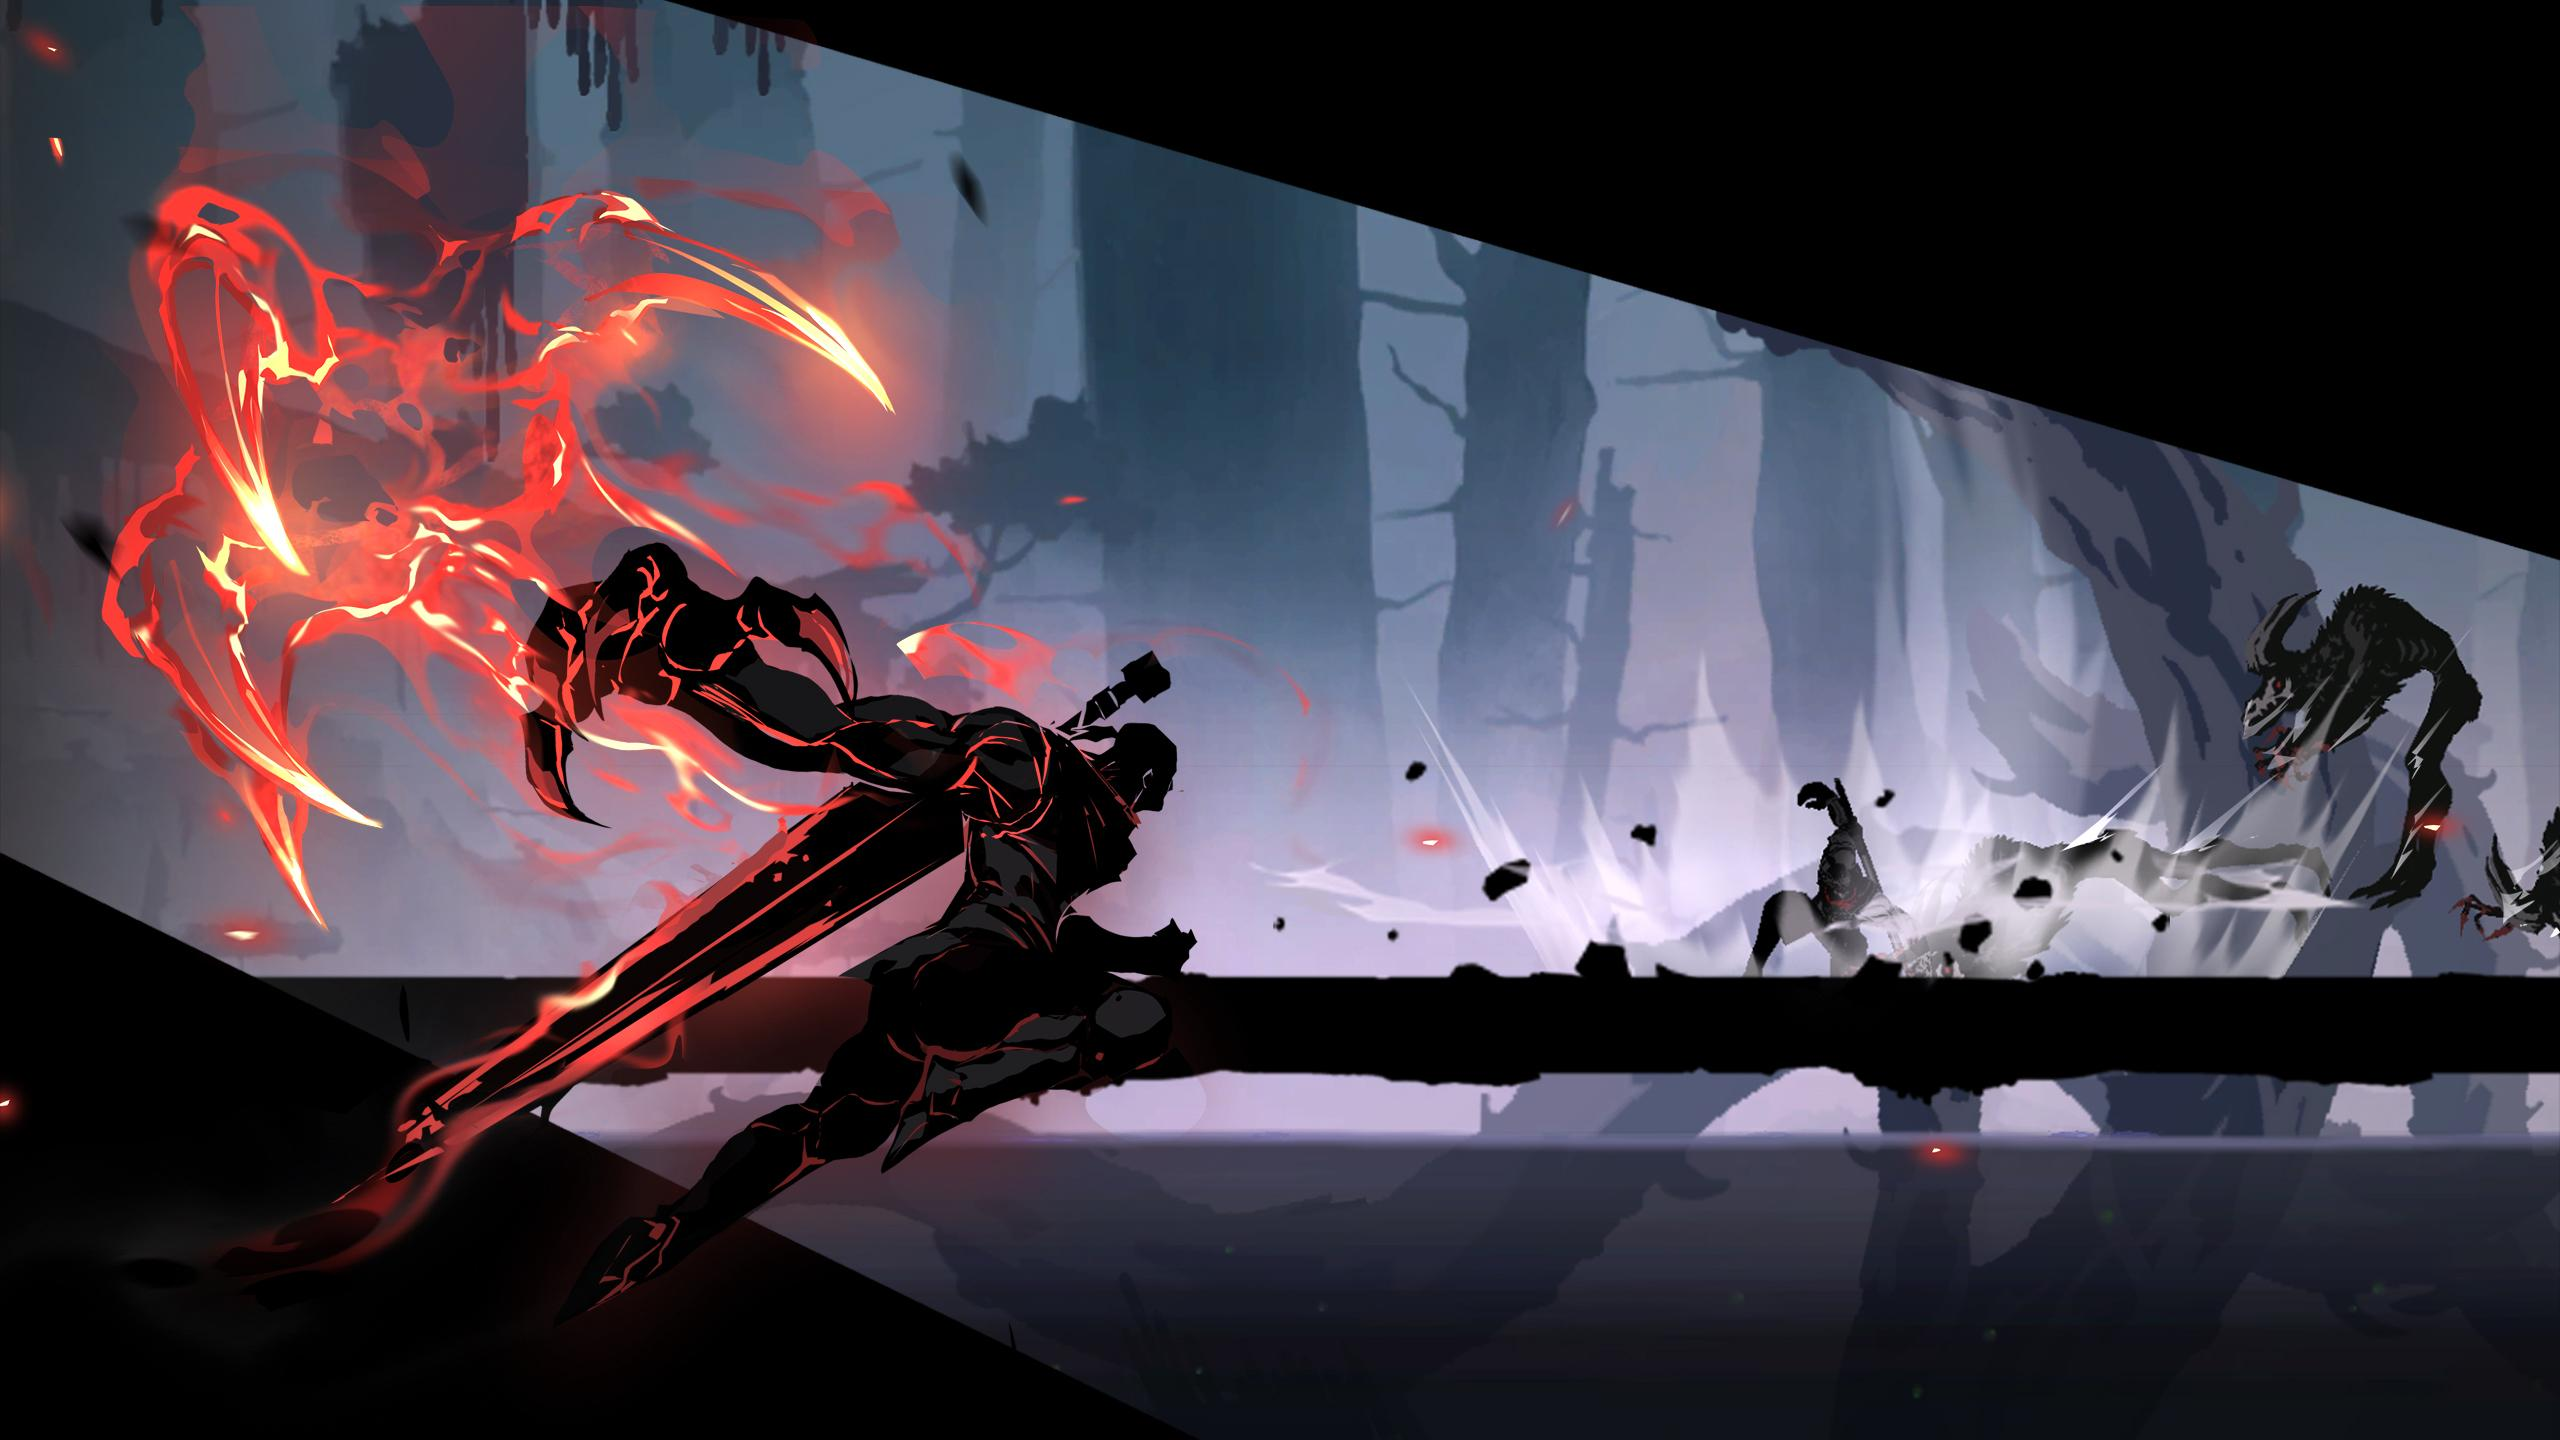 Shadow of Death 2 Mod APK Mod Menu Disable Enemy, Unlimited Souls, Blood, Keys For Android